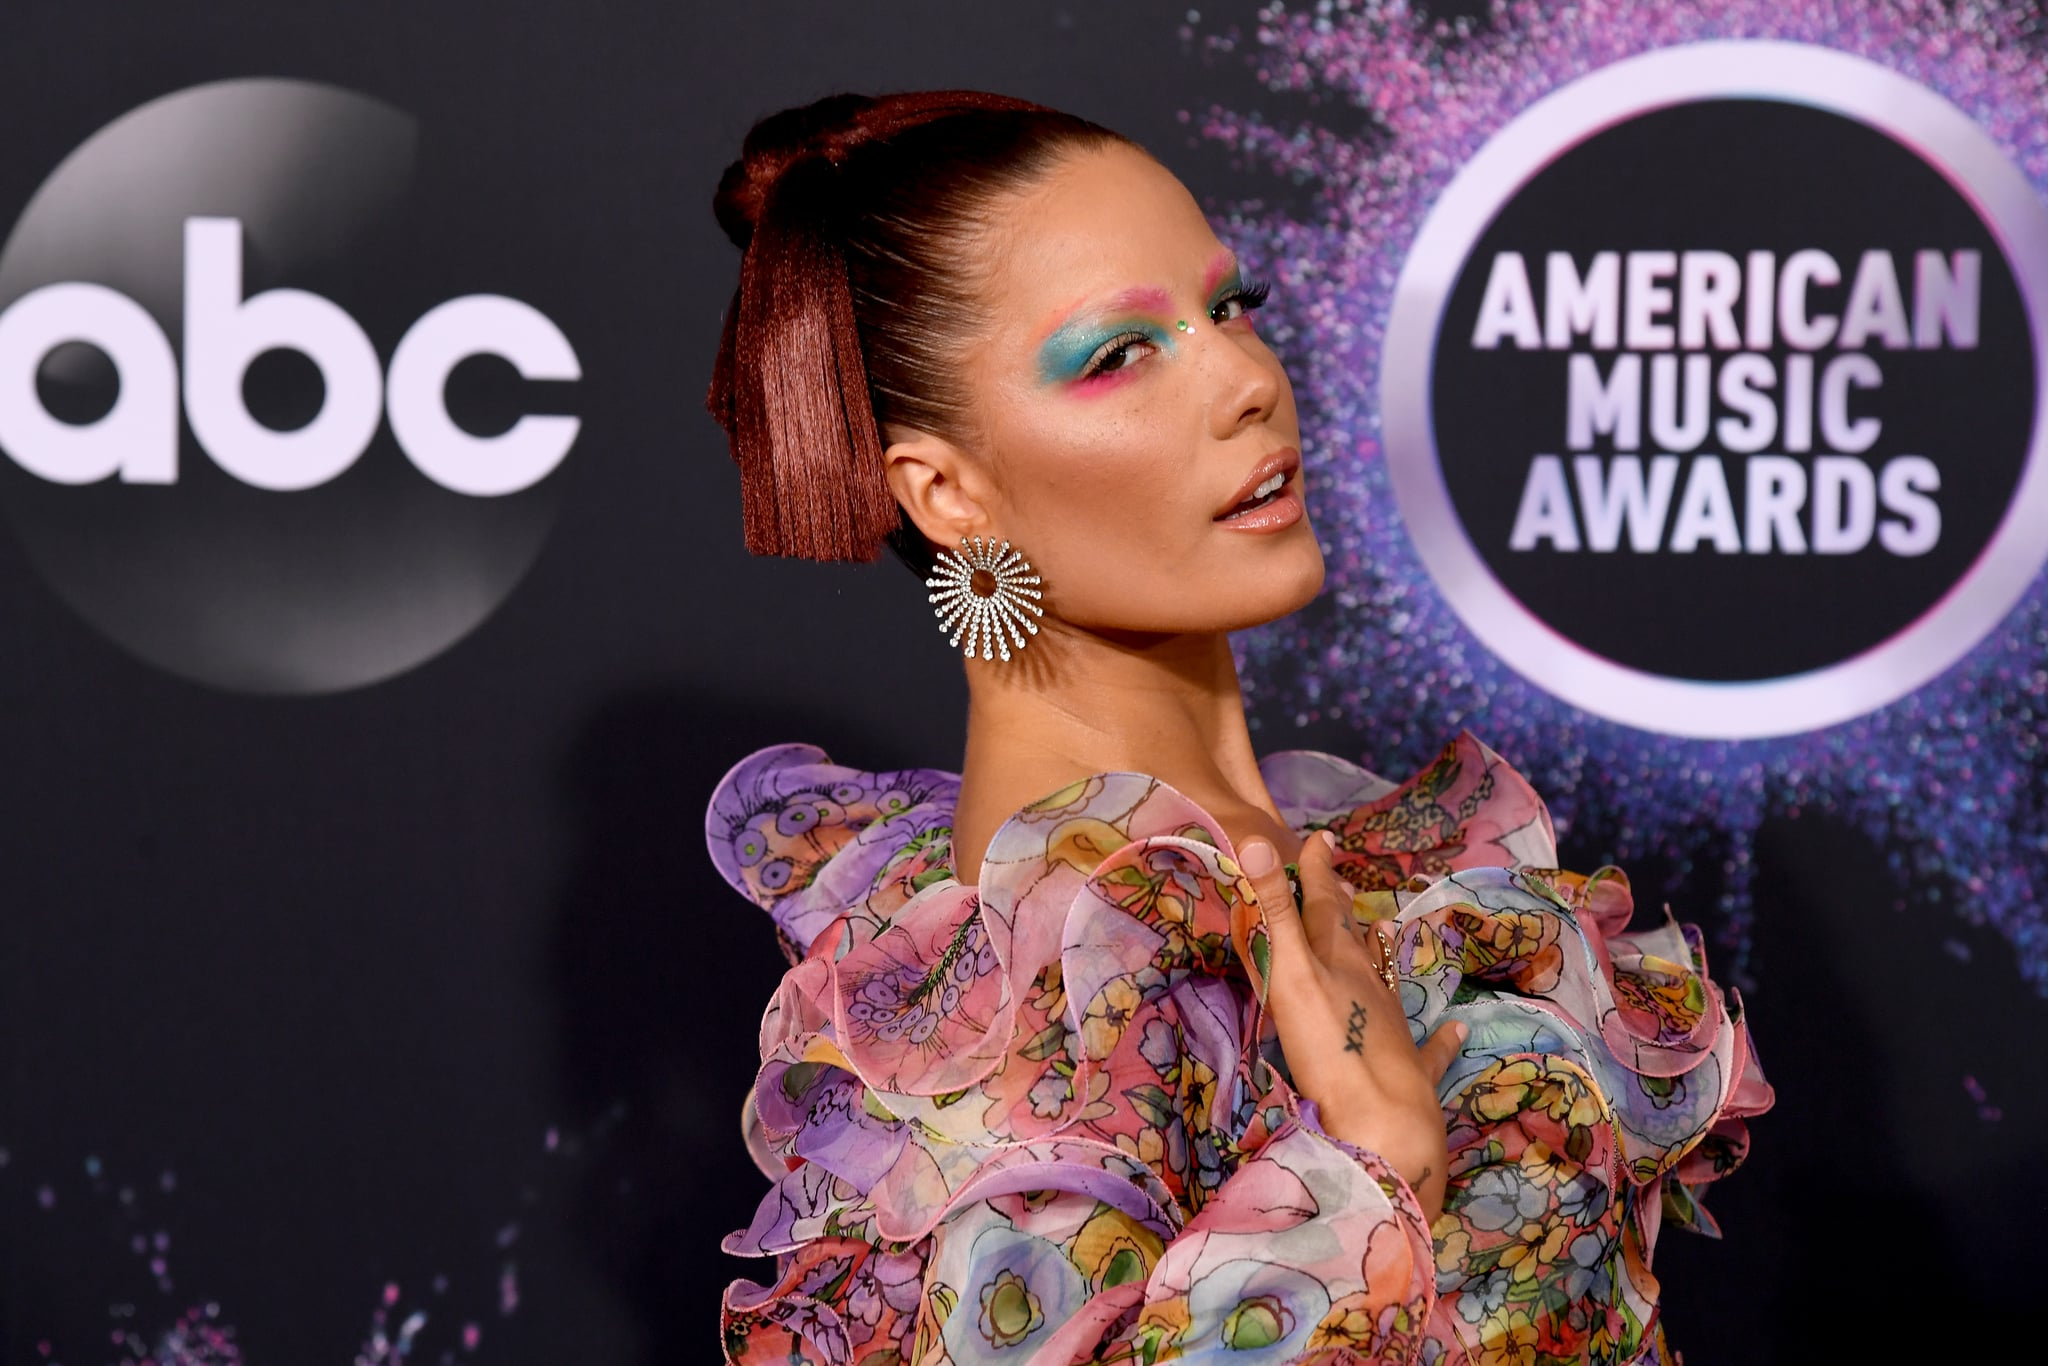 LOS ANGELES, CALIFORNIA - NOVEMBER 24: Halsey attends the 2019 American Music Awards at Microsoft Theater on November 24, 2019 in Los Angeles, California. (Photo by Jeff Kravitz/FilmMagic for dcp)